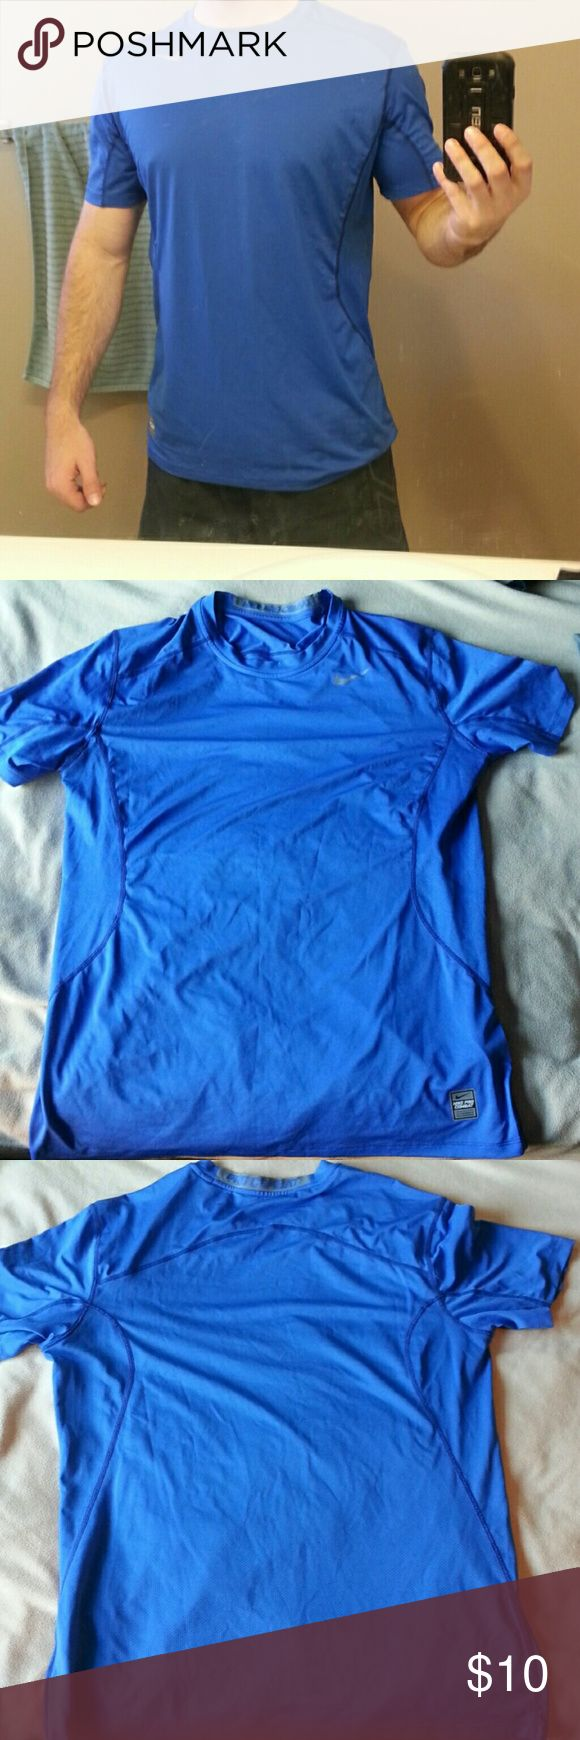 Nike pro combat blue shirt Size large, really stretchy material, slim fit but not tight, barely used, sitting in my dresser for a while Nike Shirts Tees - Short Sleeve